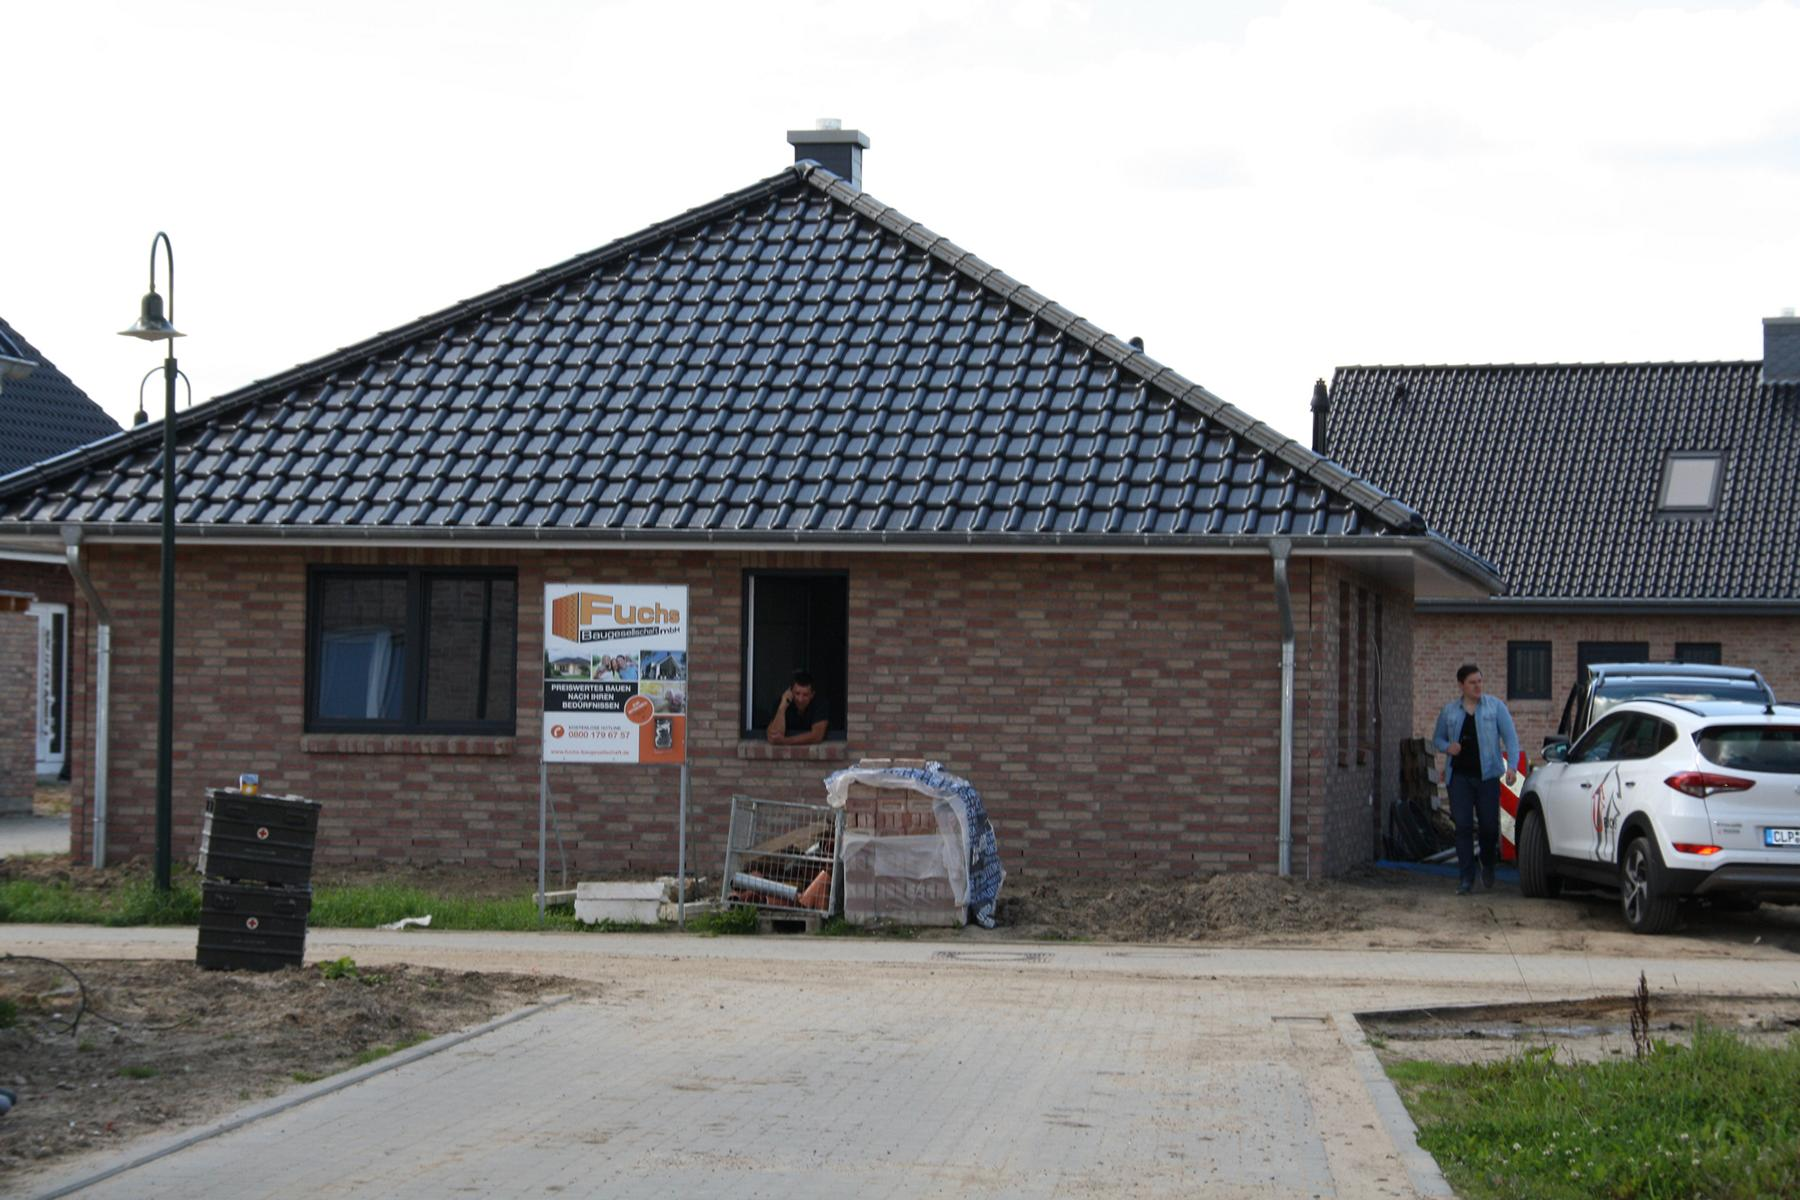 Bungalow in Haseldorf 01